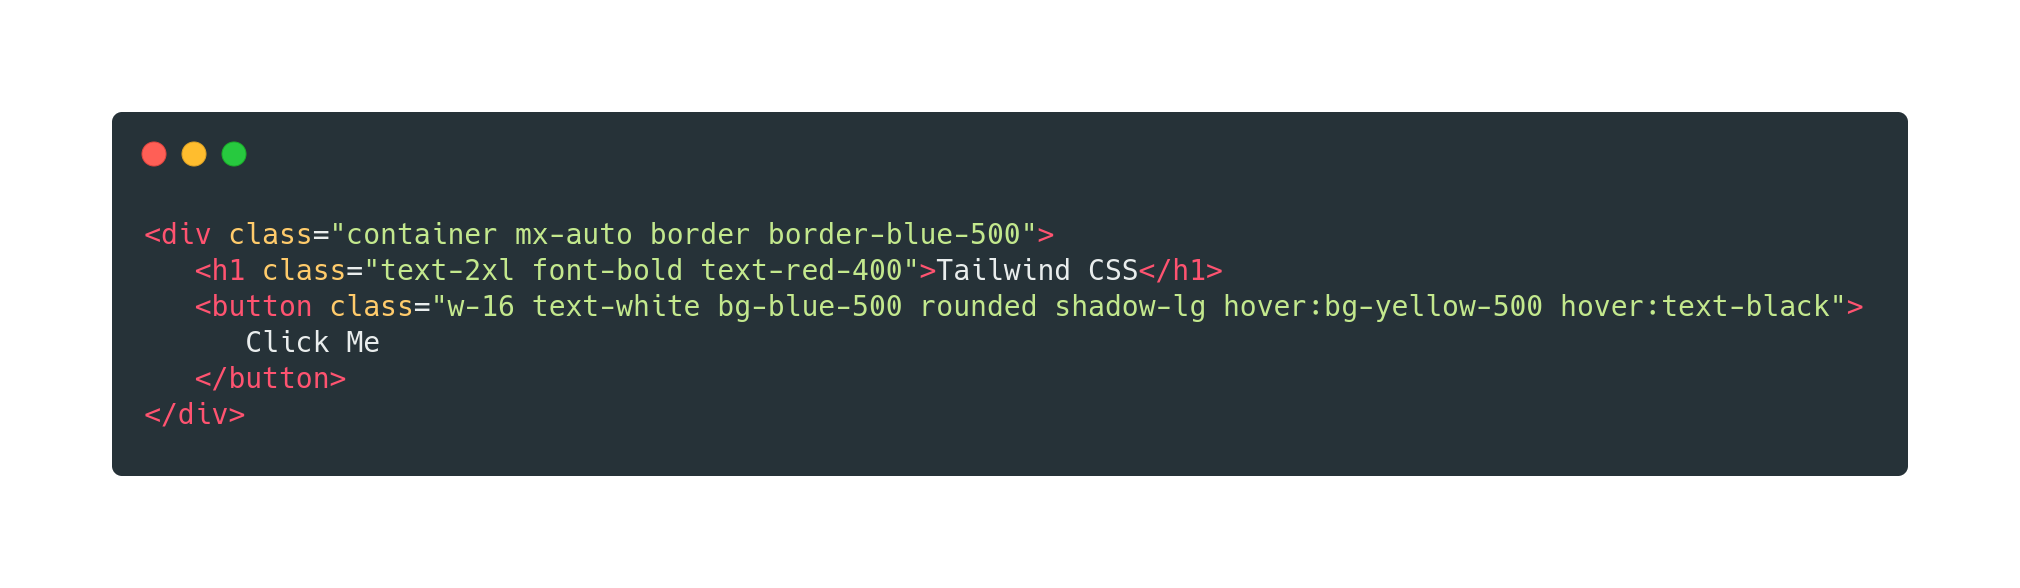 An example of adding Tailwind CSS utility classes to a block of HTML